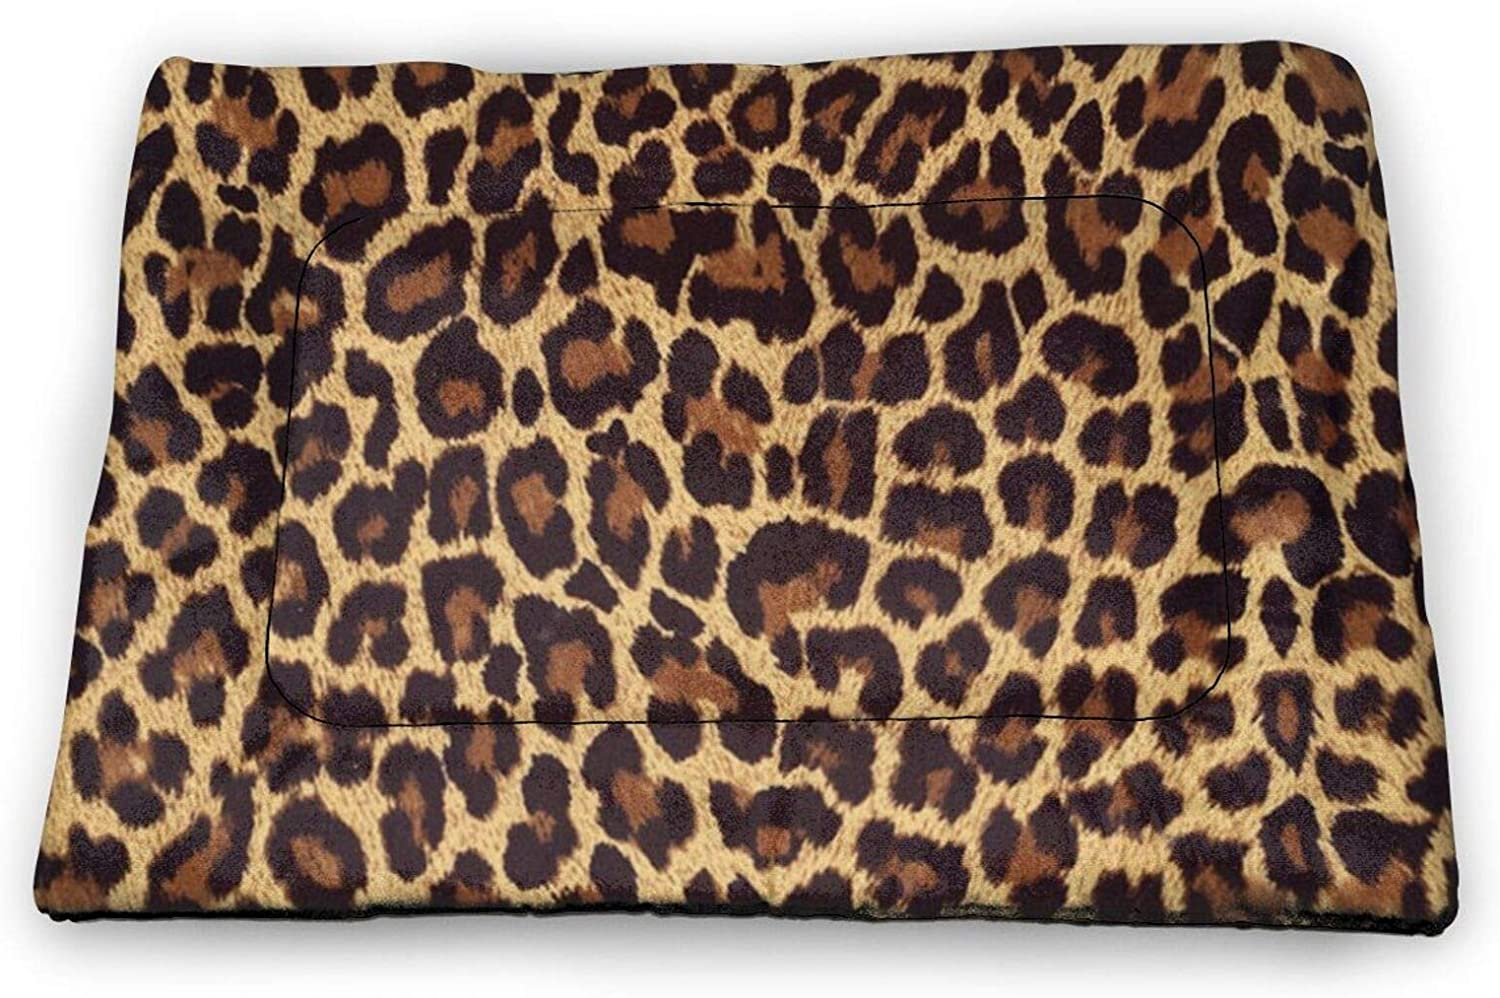 Neddelo Cool Cheetah Leopard Pet Mat£¬Washable Pads for Dogs,Reusable Puppy Training Pads